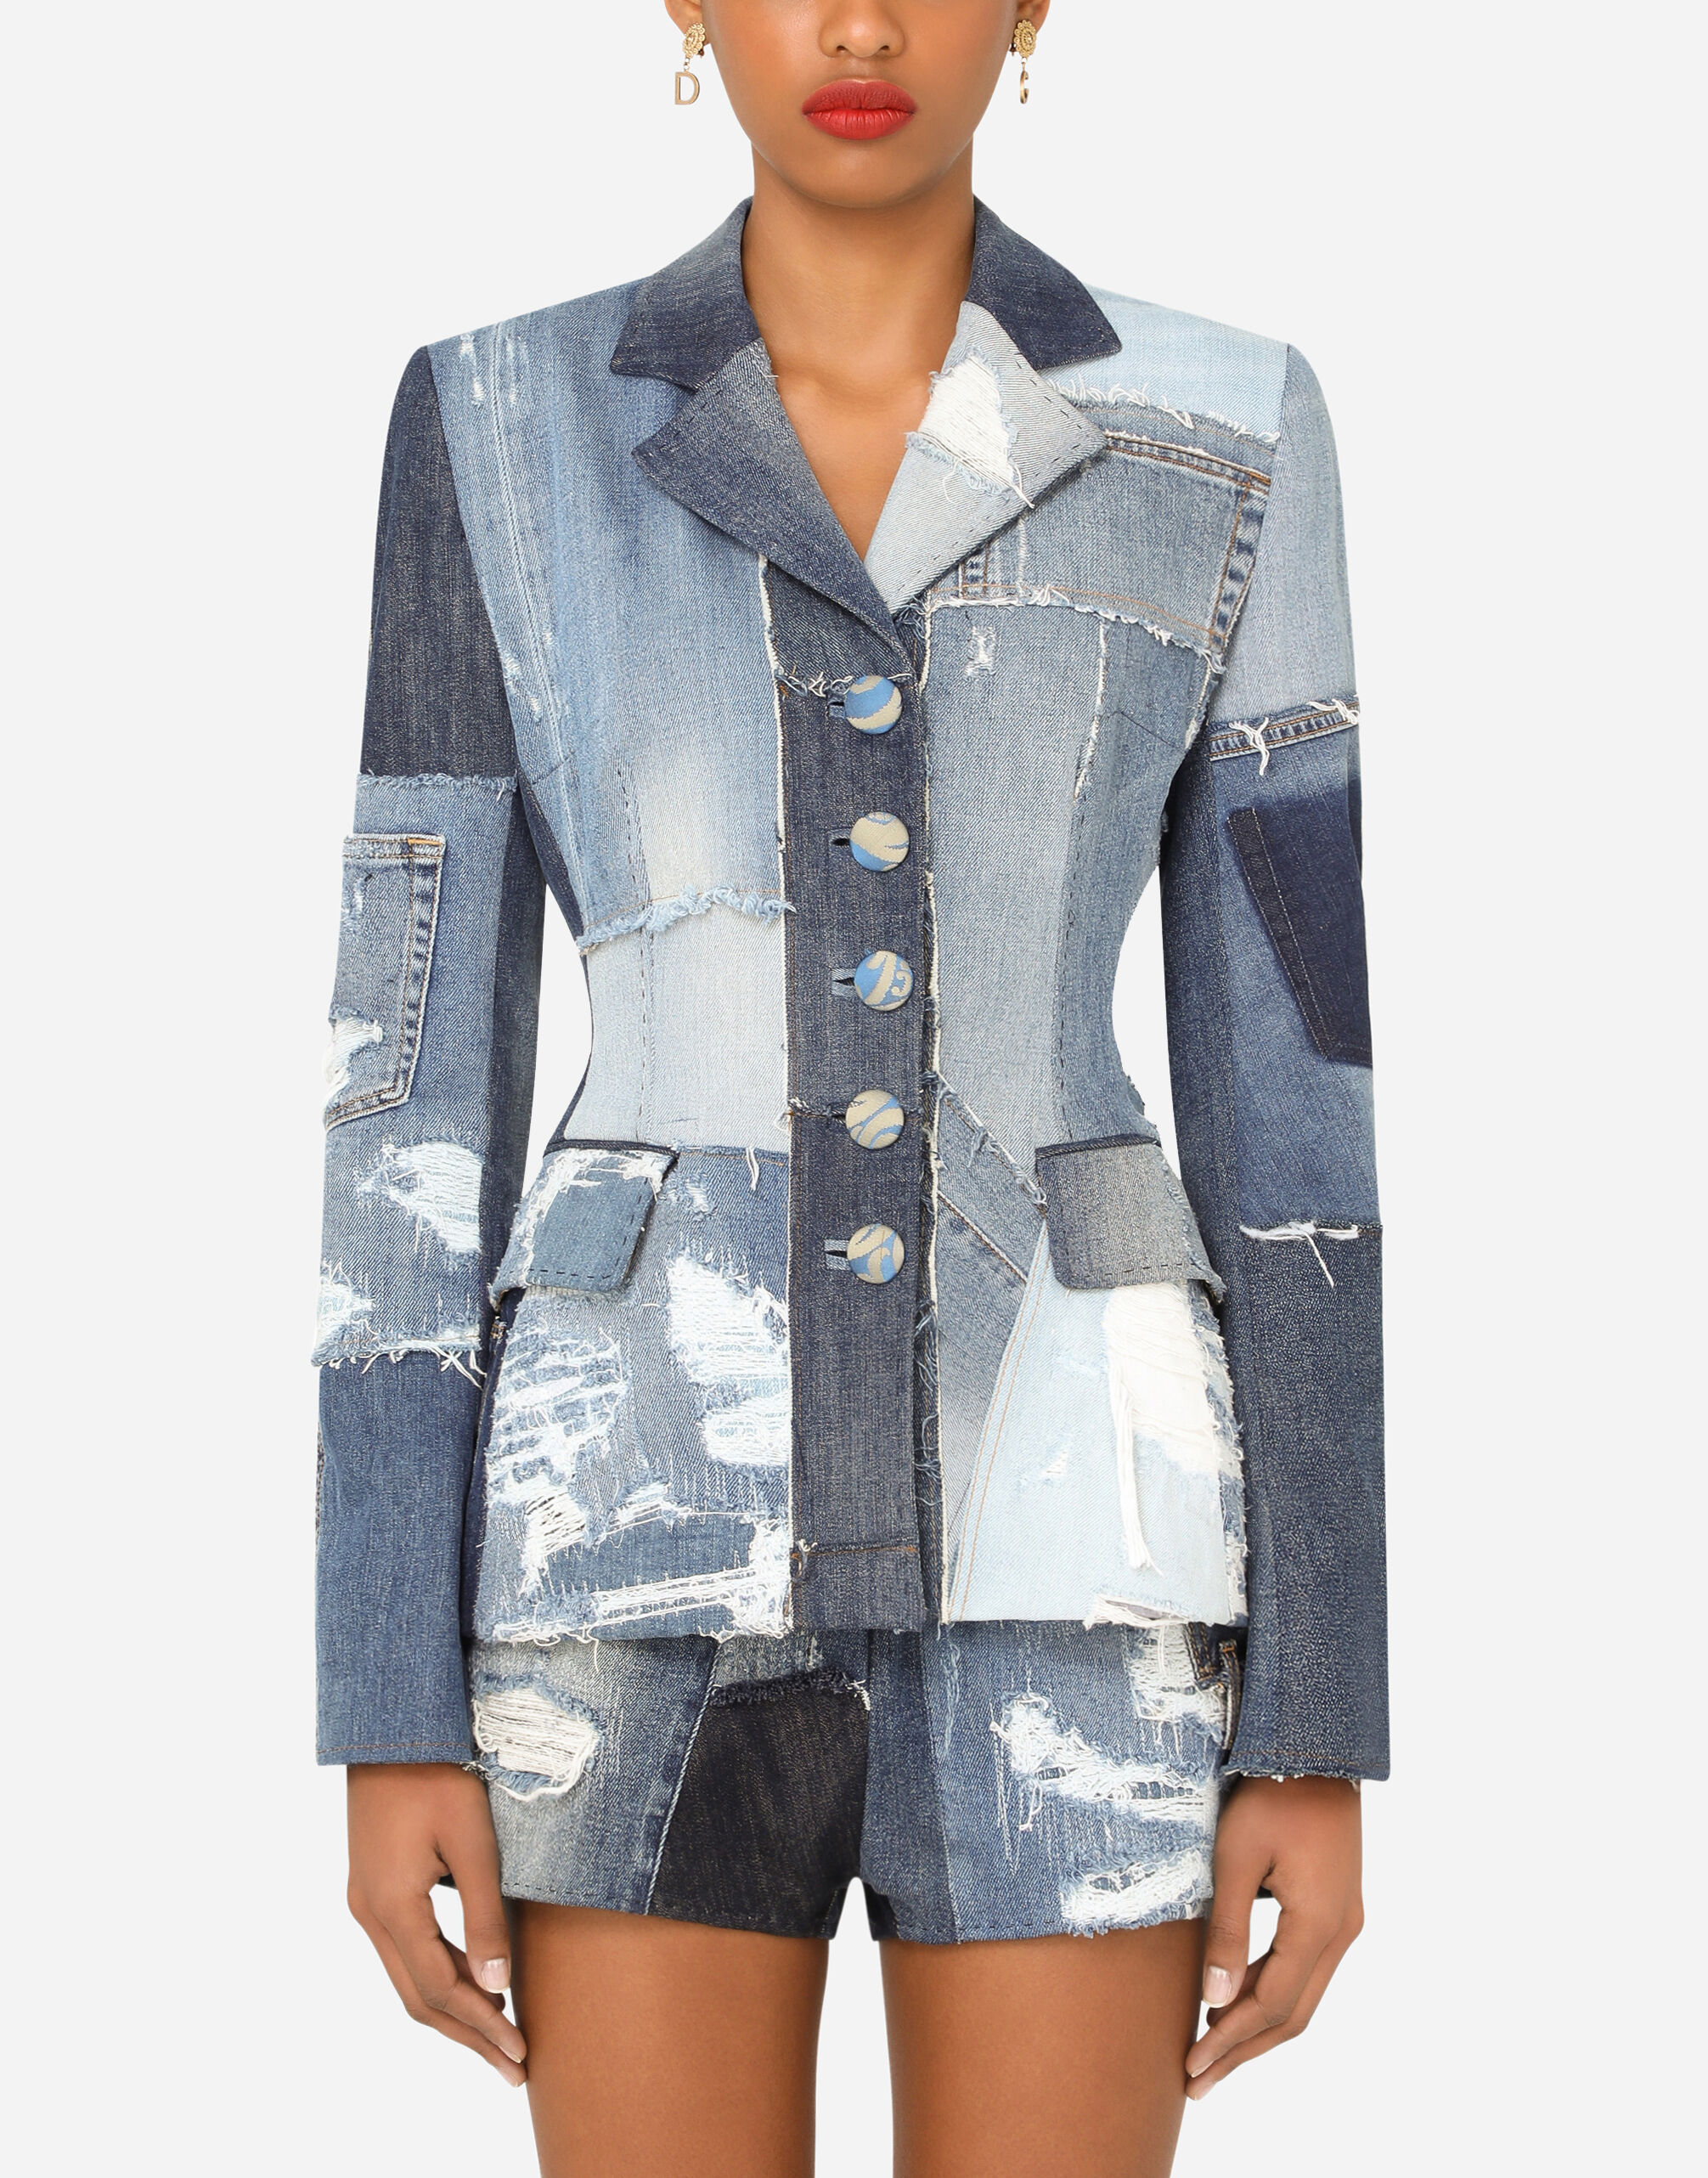 Giacca Dolce monopetto denim patchwork